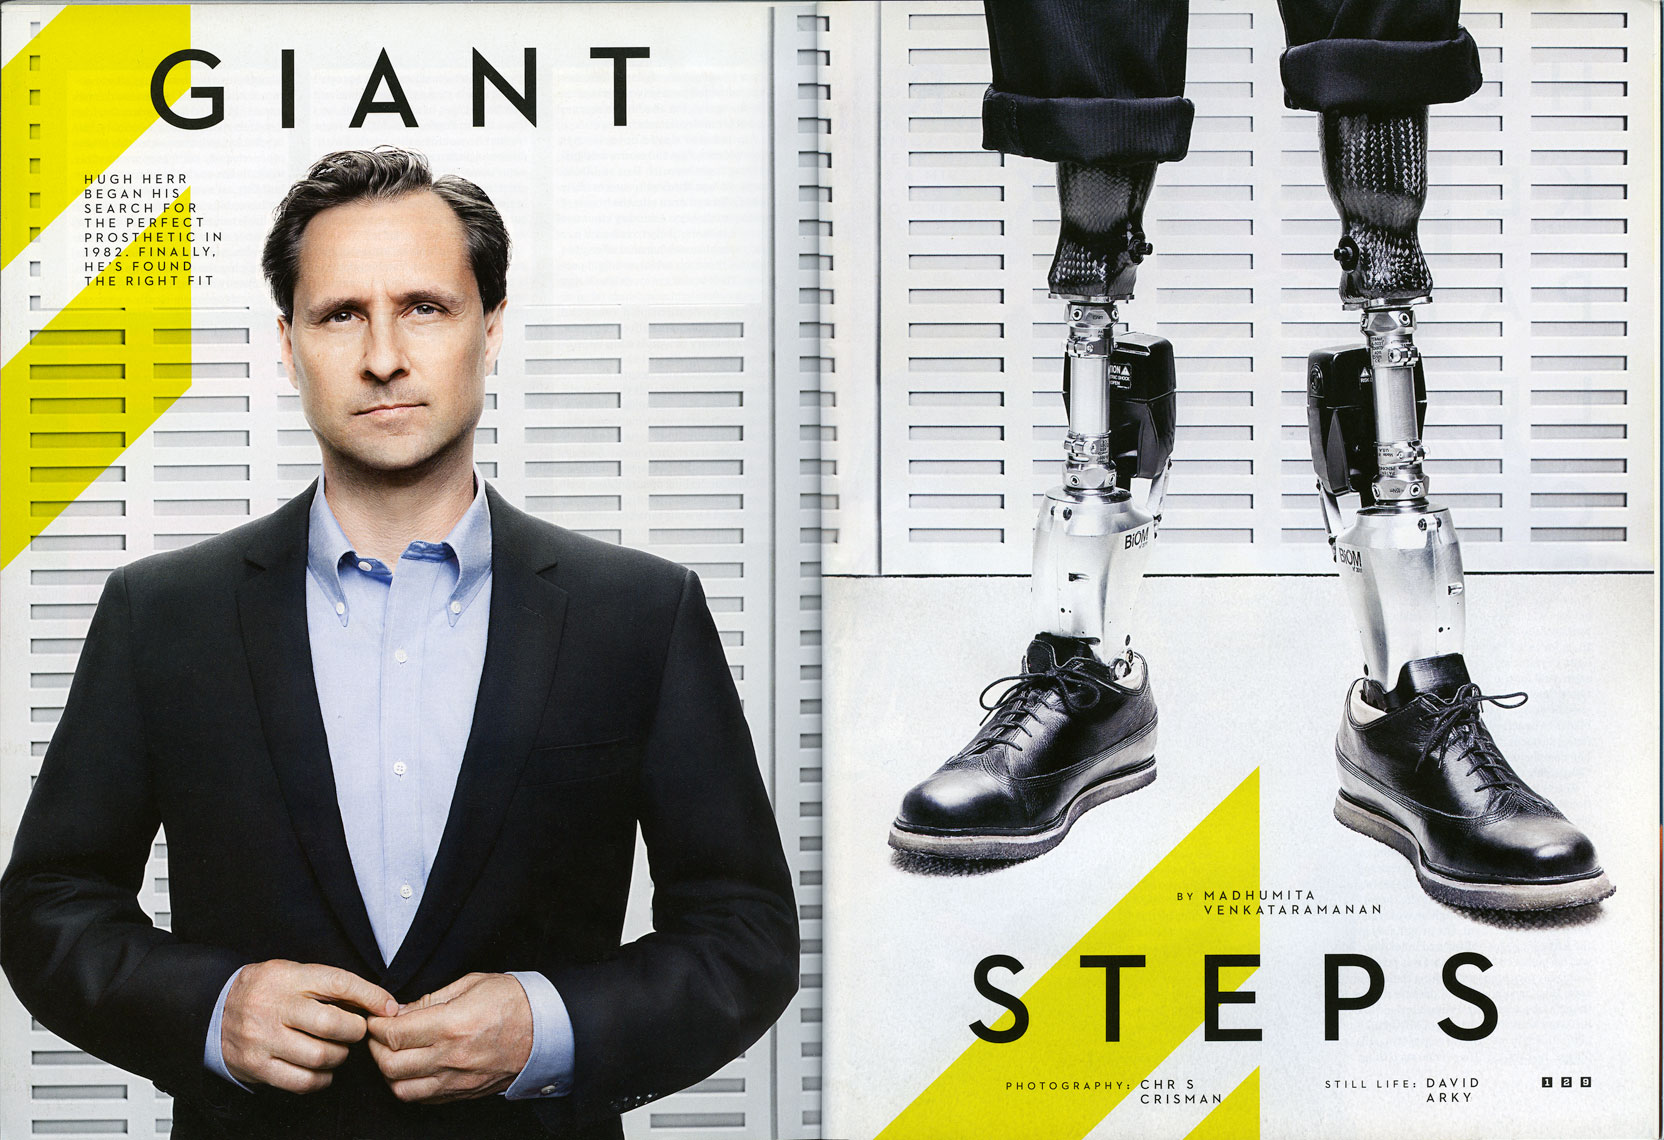 WIRED UK: The MIT MEDIA LAB. November 2012 issue  - SPREAD 7 and 8: Hugh Herr